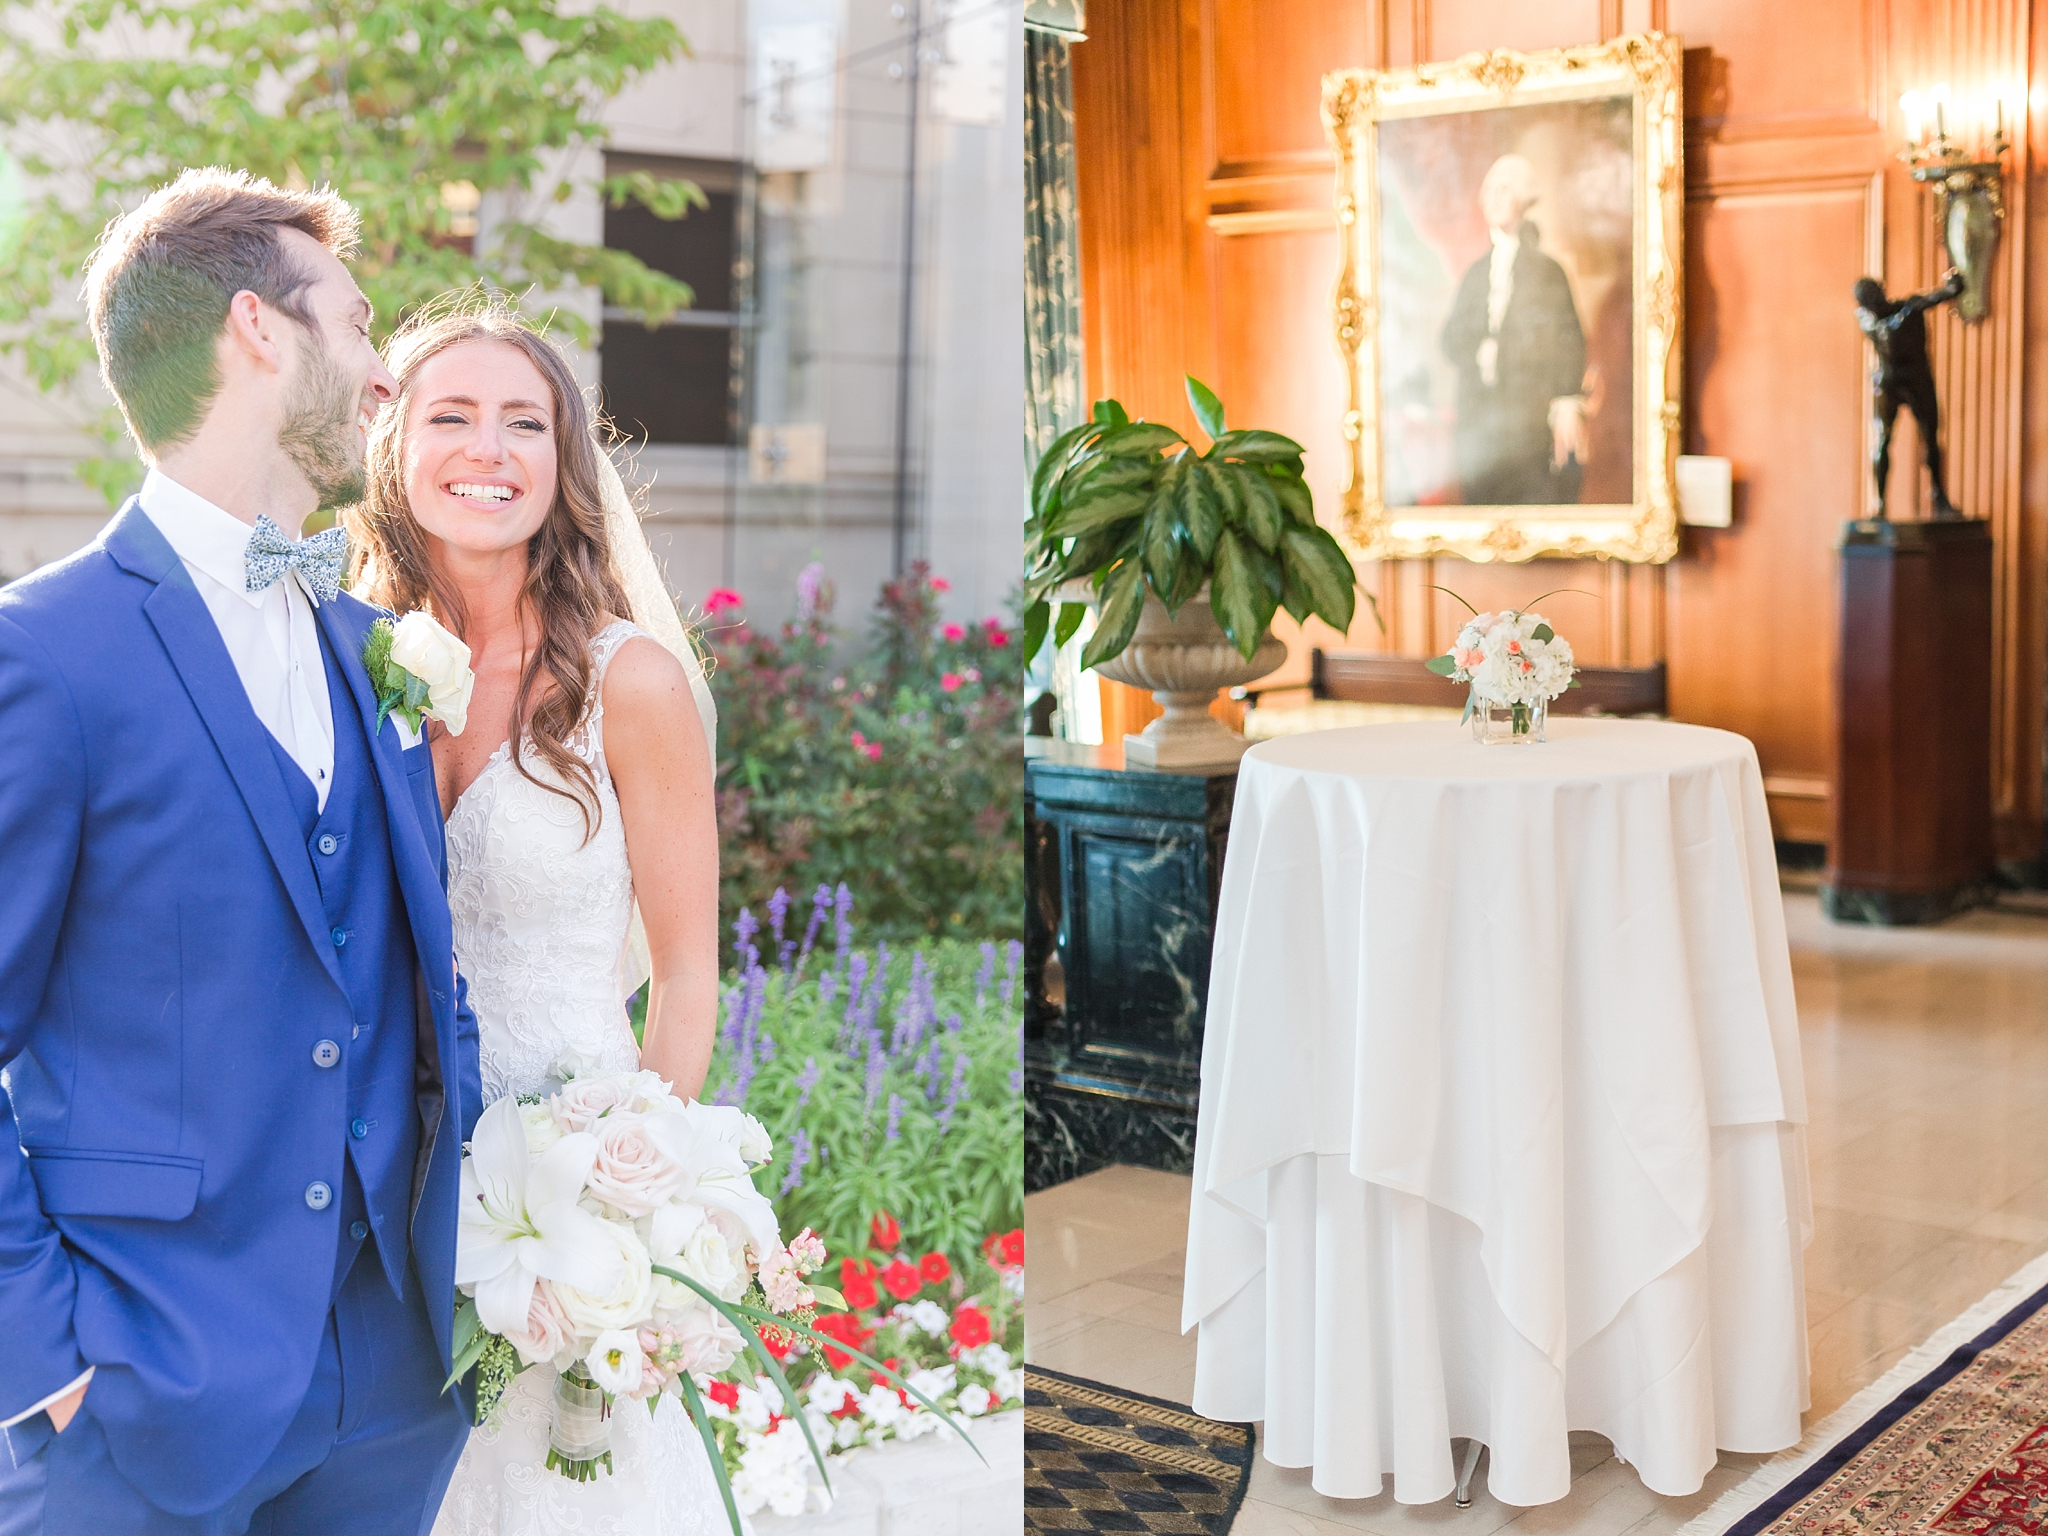 playful-blush-navy-wedding-photos-the-detroit-athletic-club-in-detroit-michigan-by-courtney-carolyn-photography_0058.jpg